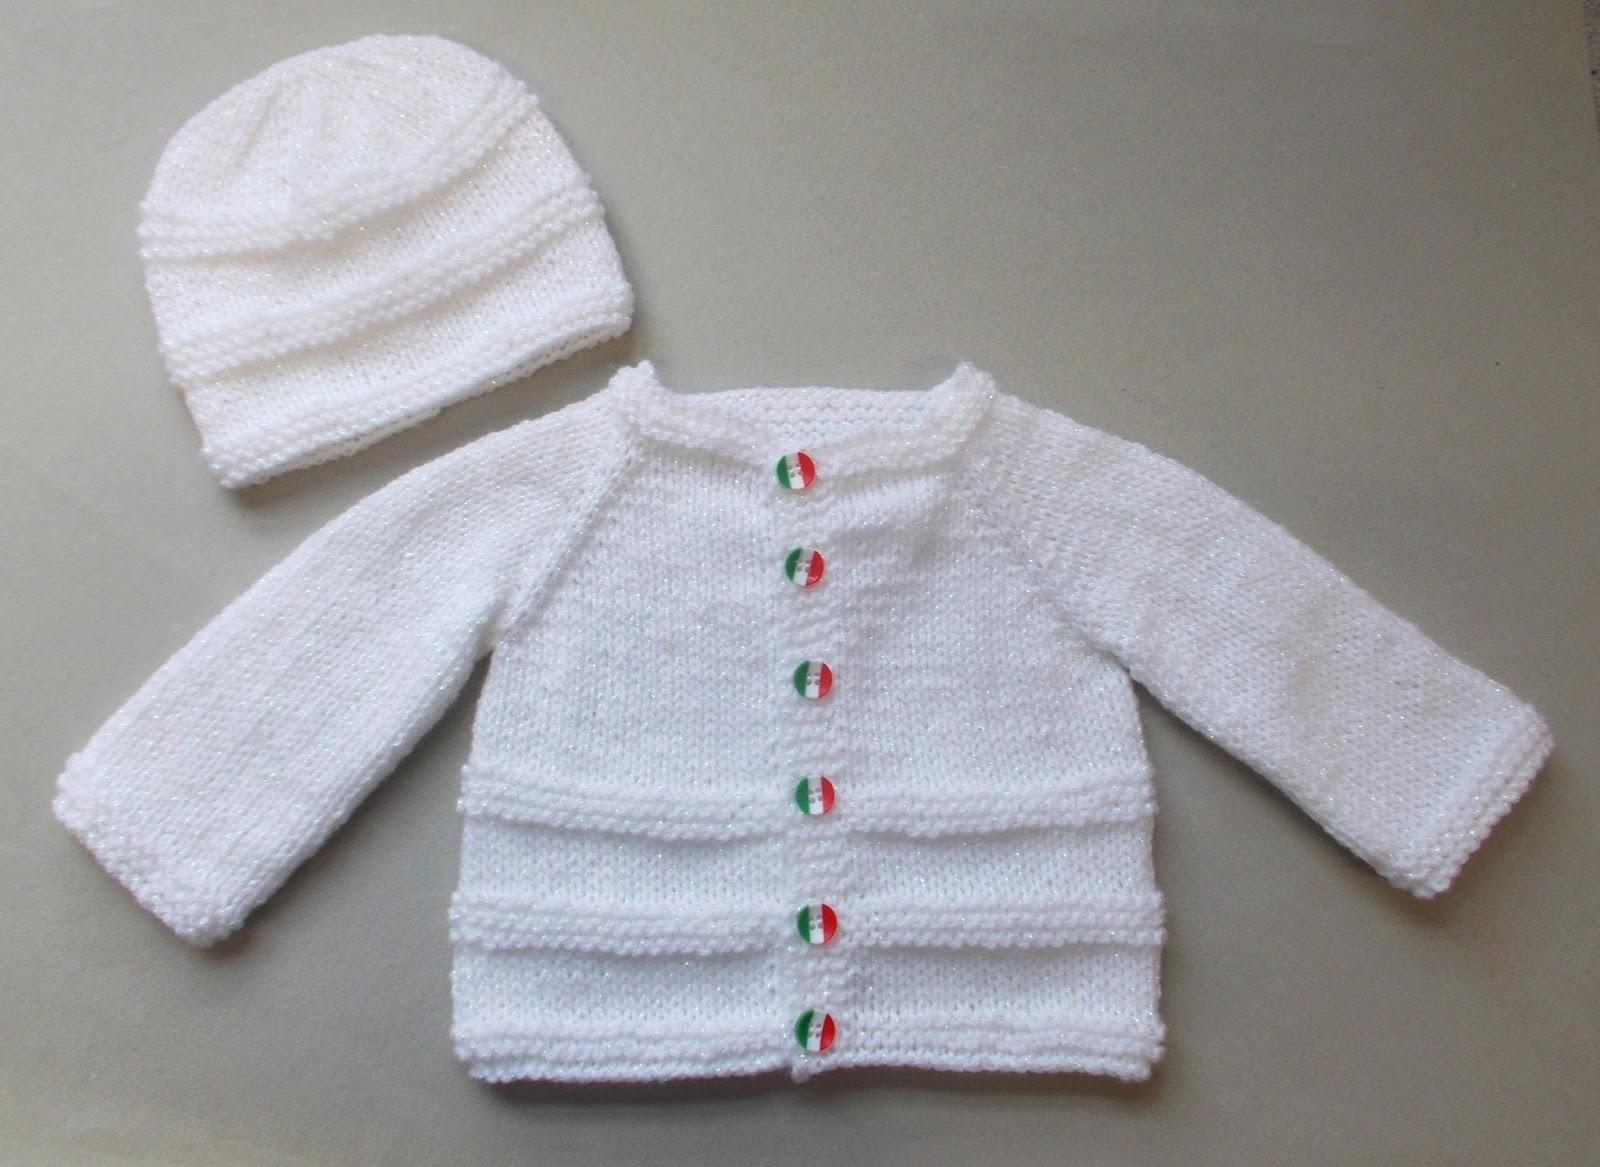 These sweet knit cardigans and sweaters for baby are so fun to make! Whether it's a top down pullover or a buttoned cardi, these patterns are the perfect layer for every season. Keep baby warm in projects made in a variety of gauges and fibers, ideal for every skill level. | Yarnspirations.